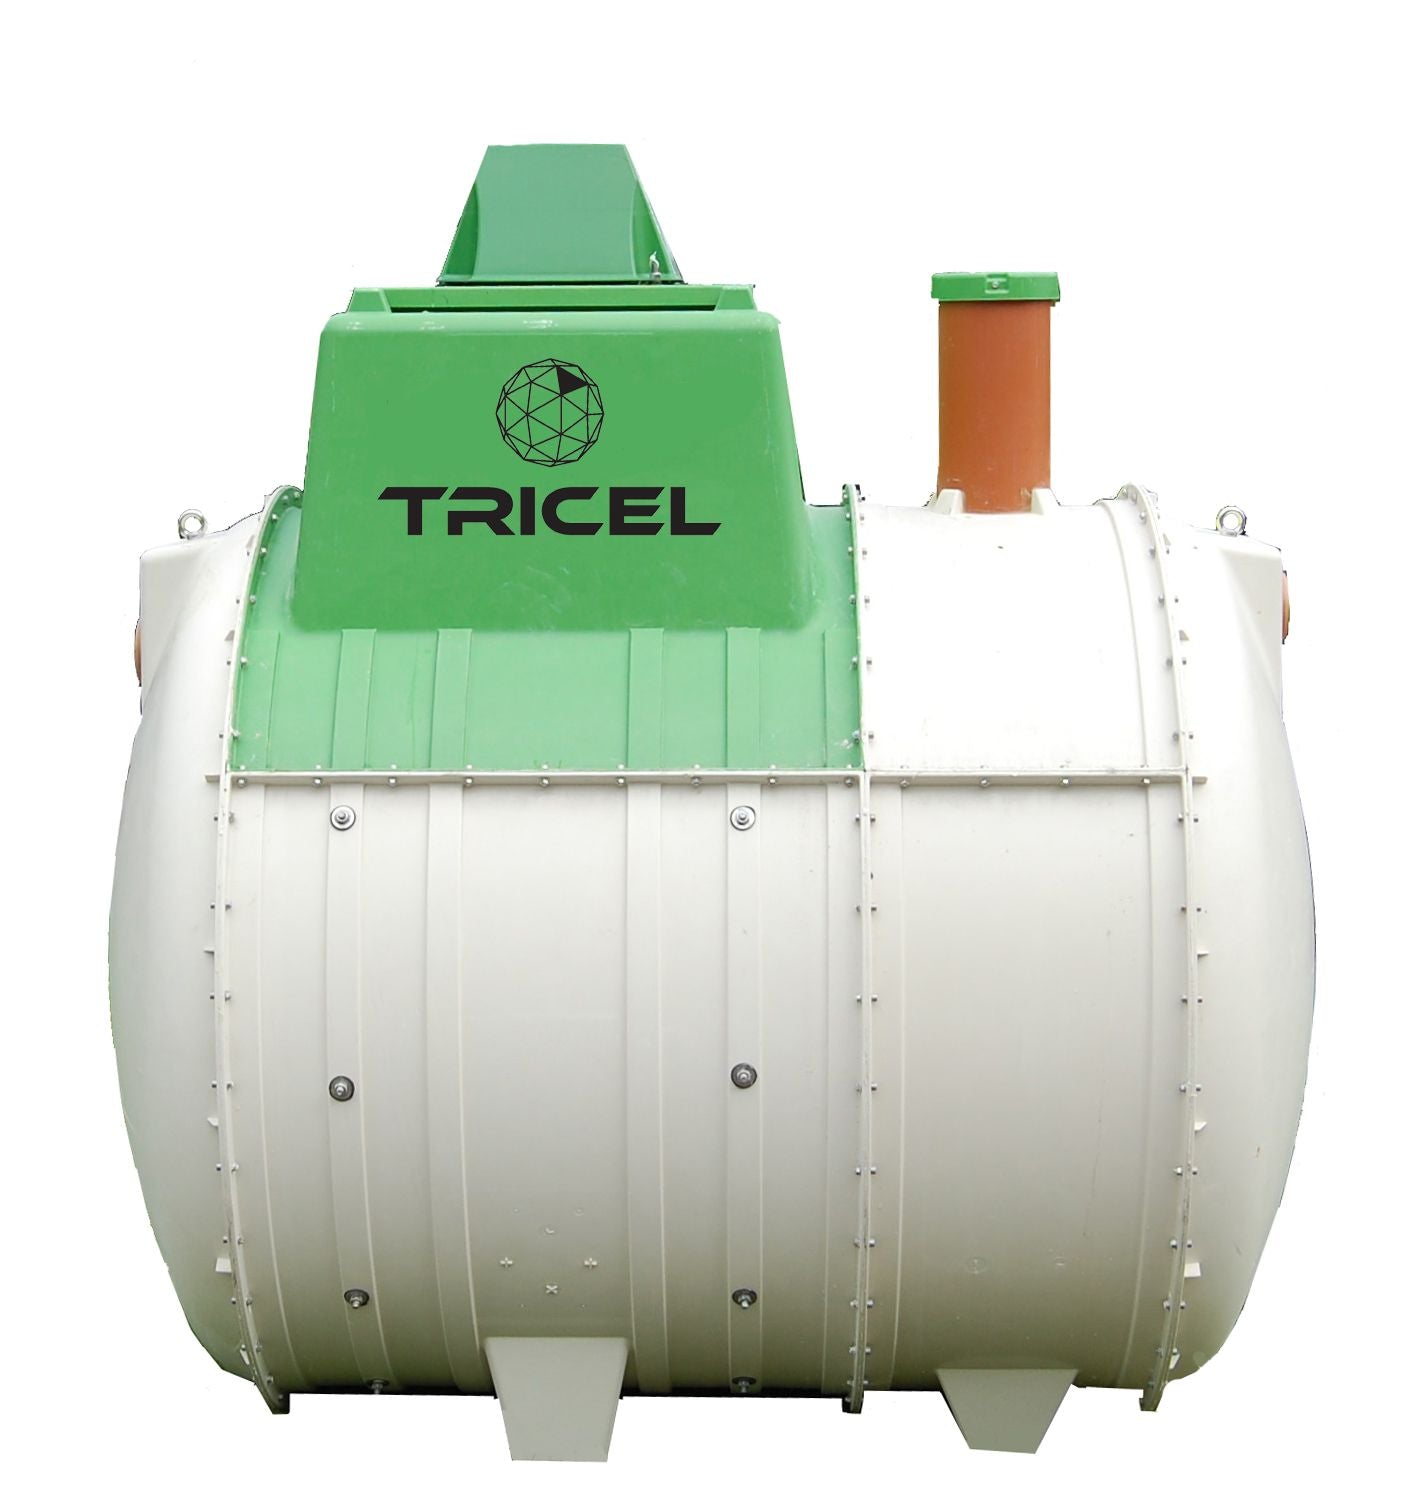 Tricel Novo UK6 Sewage Treatment System (up to 6 population)